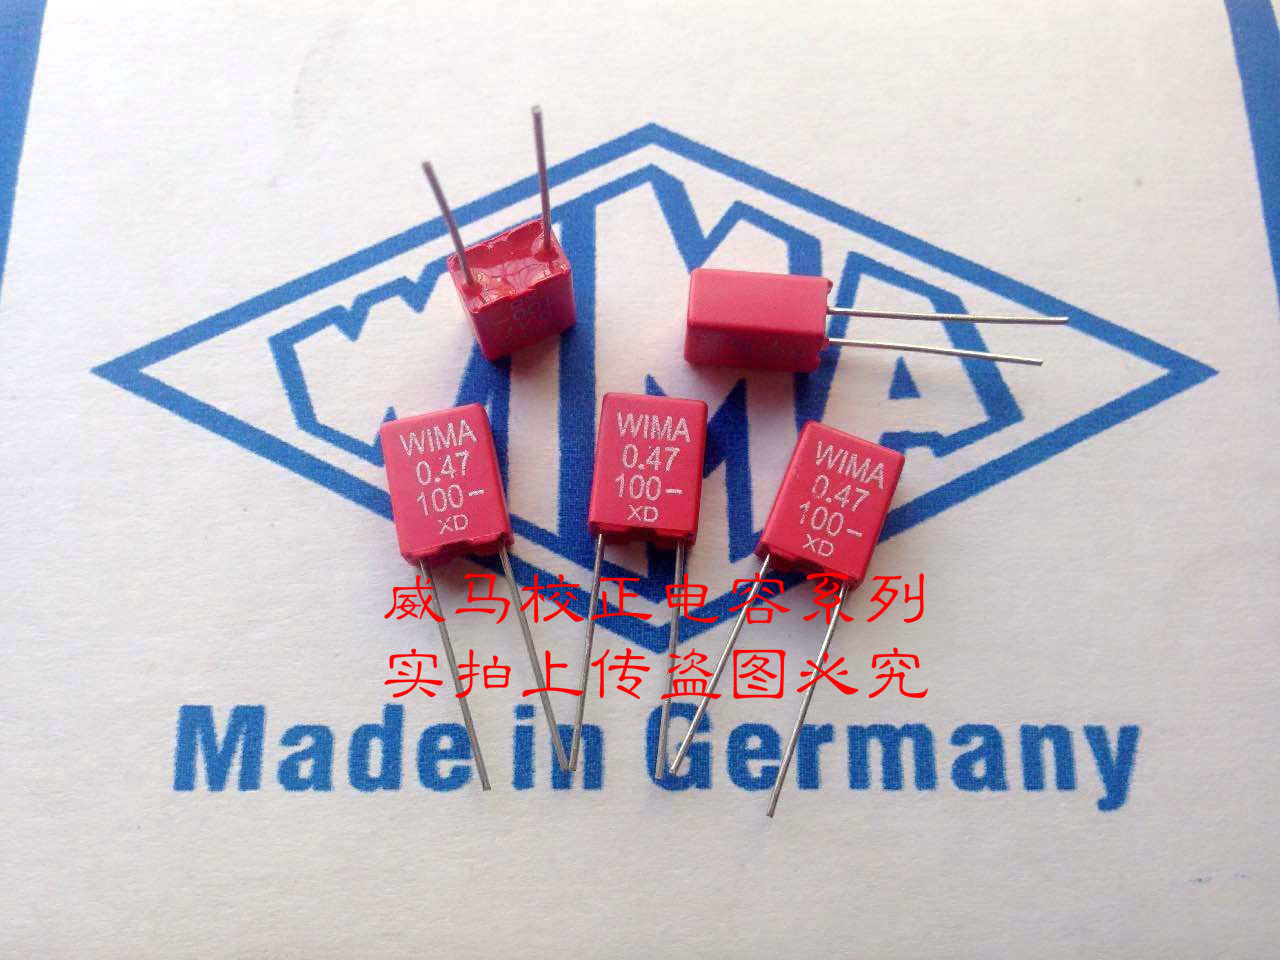 2019 hot sale 10pcs/20pcs Capacitor WIMA 474 100V 0.47UF 100V 0.47UF MKS2 P: 5mm Audio capacitor free shipping2019 hot sale 10pcs/20pcs Capacitor WIMA 474 100V 0.47UF 100V 0.47UF MKS2 P: 5mm Audio capacitor free shipping